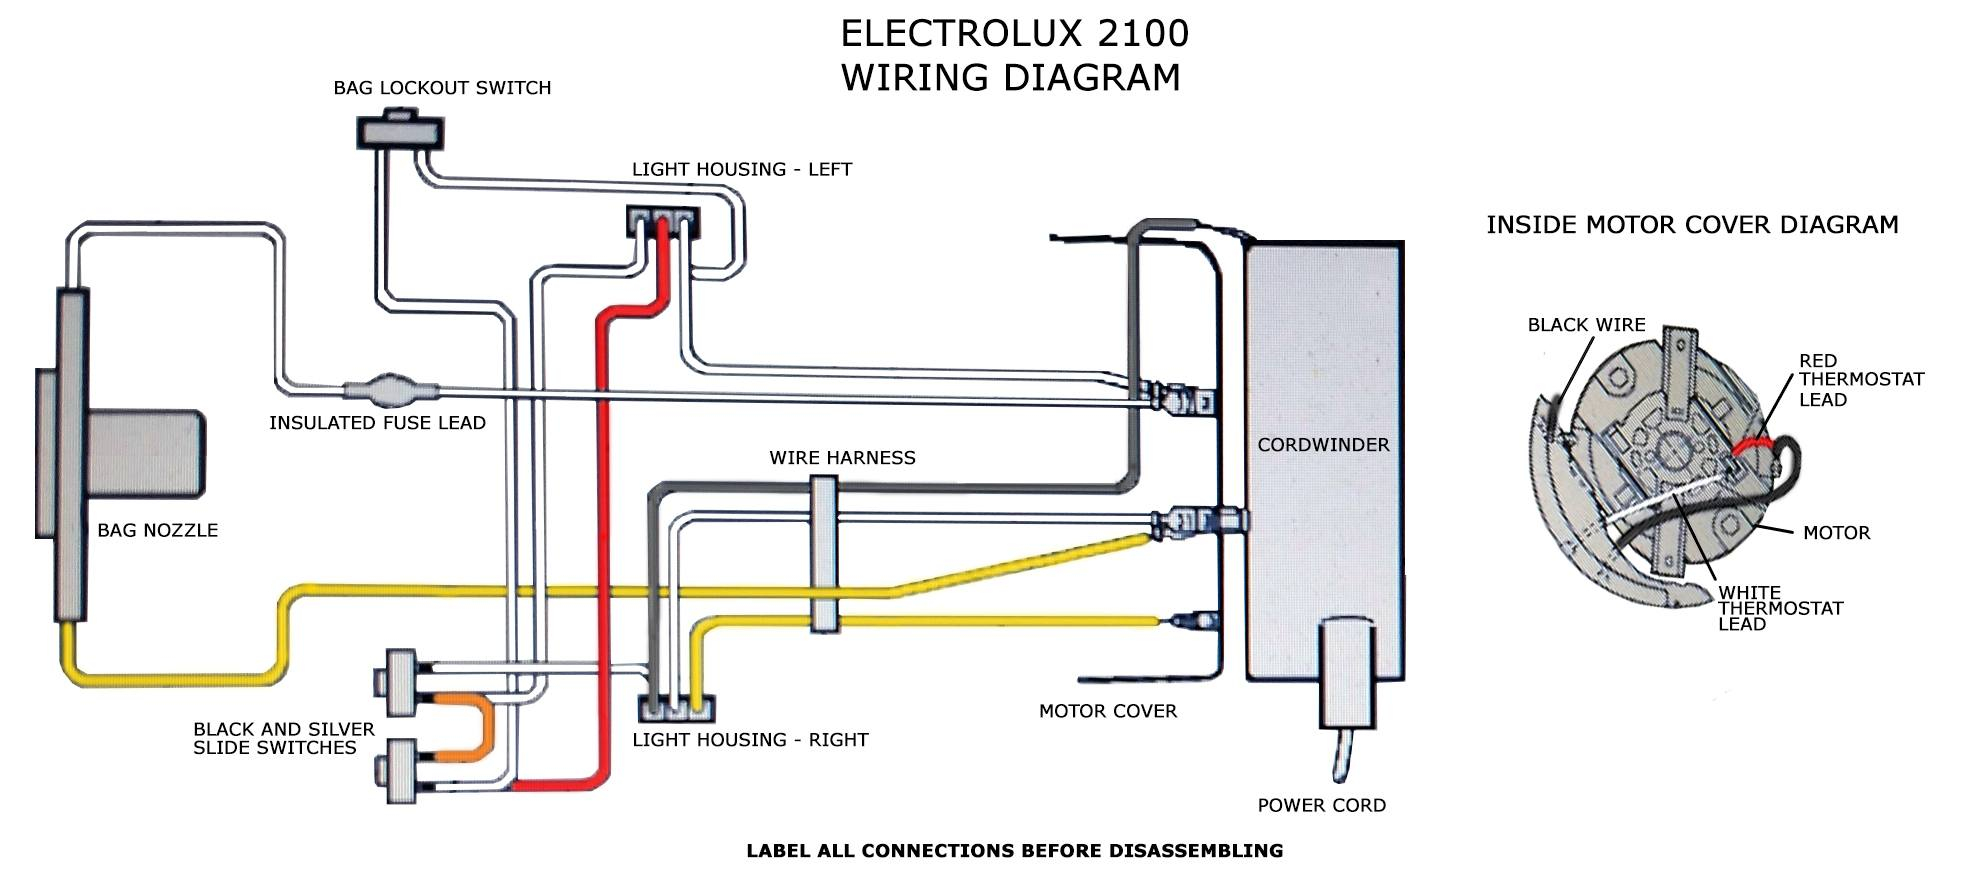 trex 450 wiring schematic yfz 450 wiring schematic electrolux vacuum wiring diagram download wiring diagram